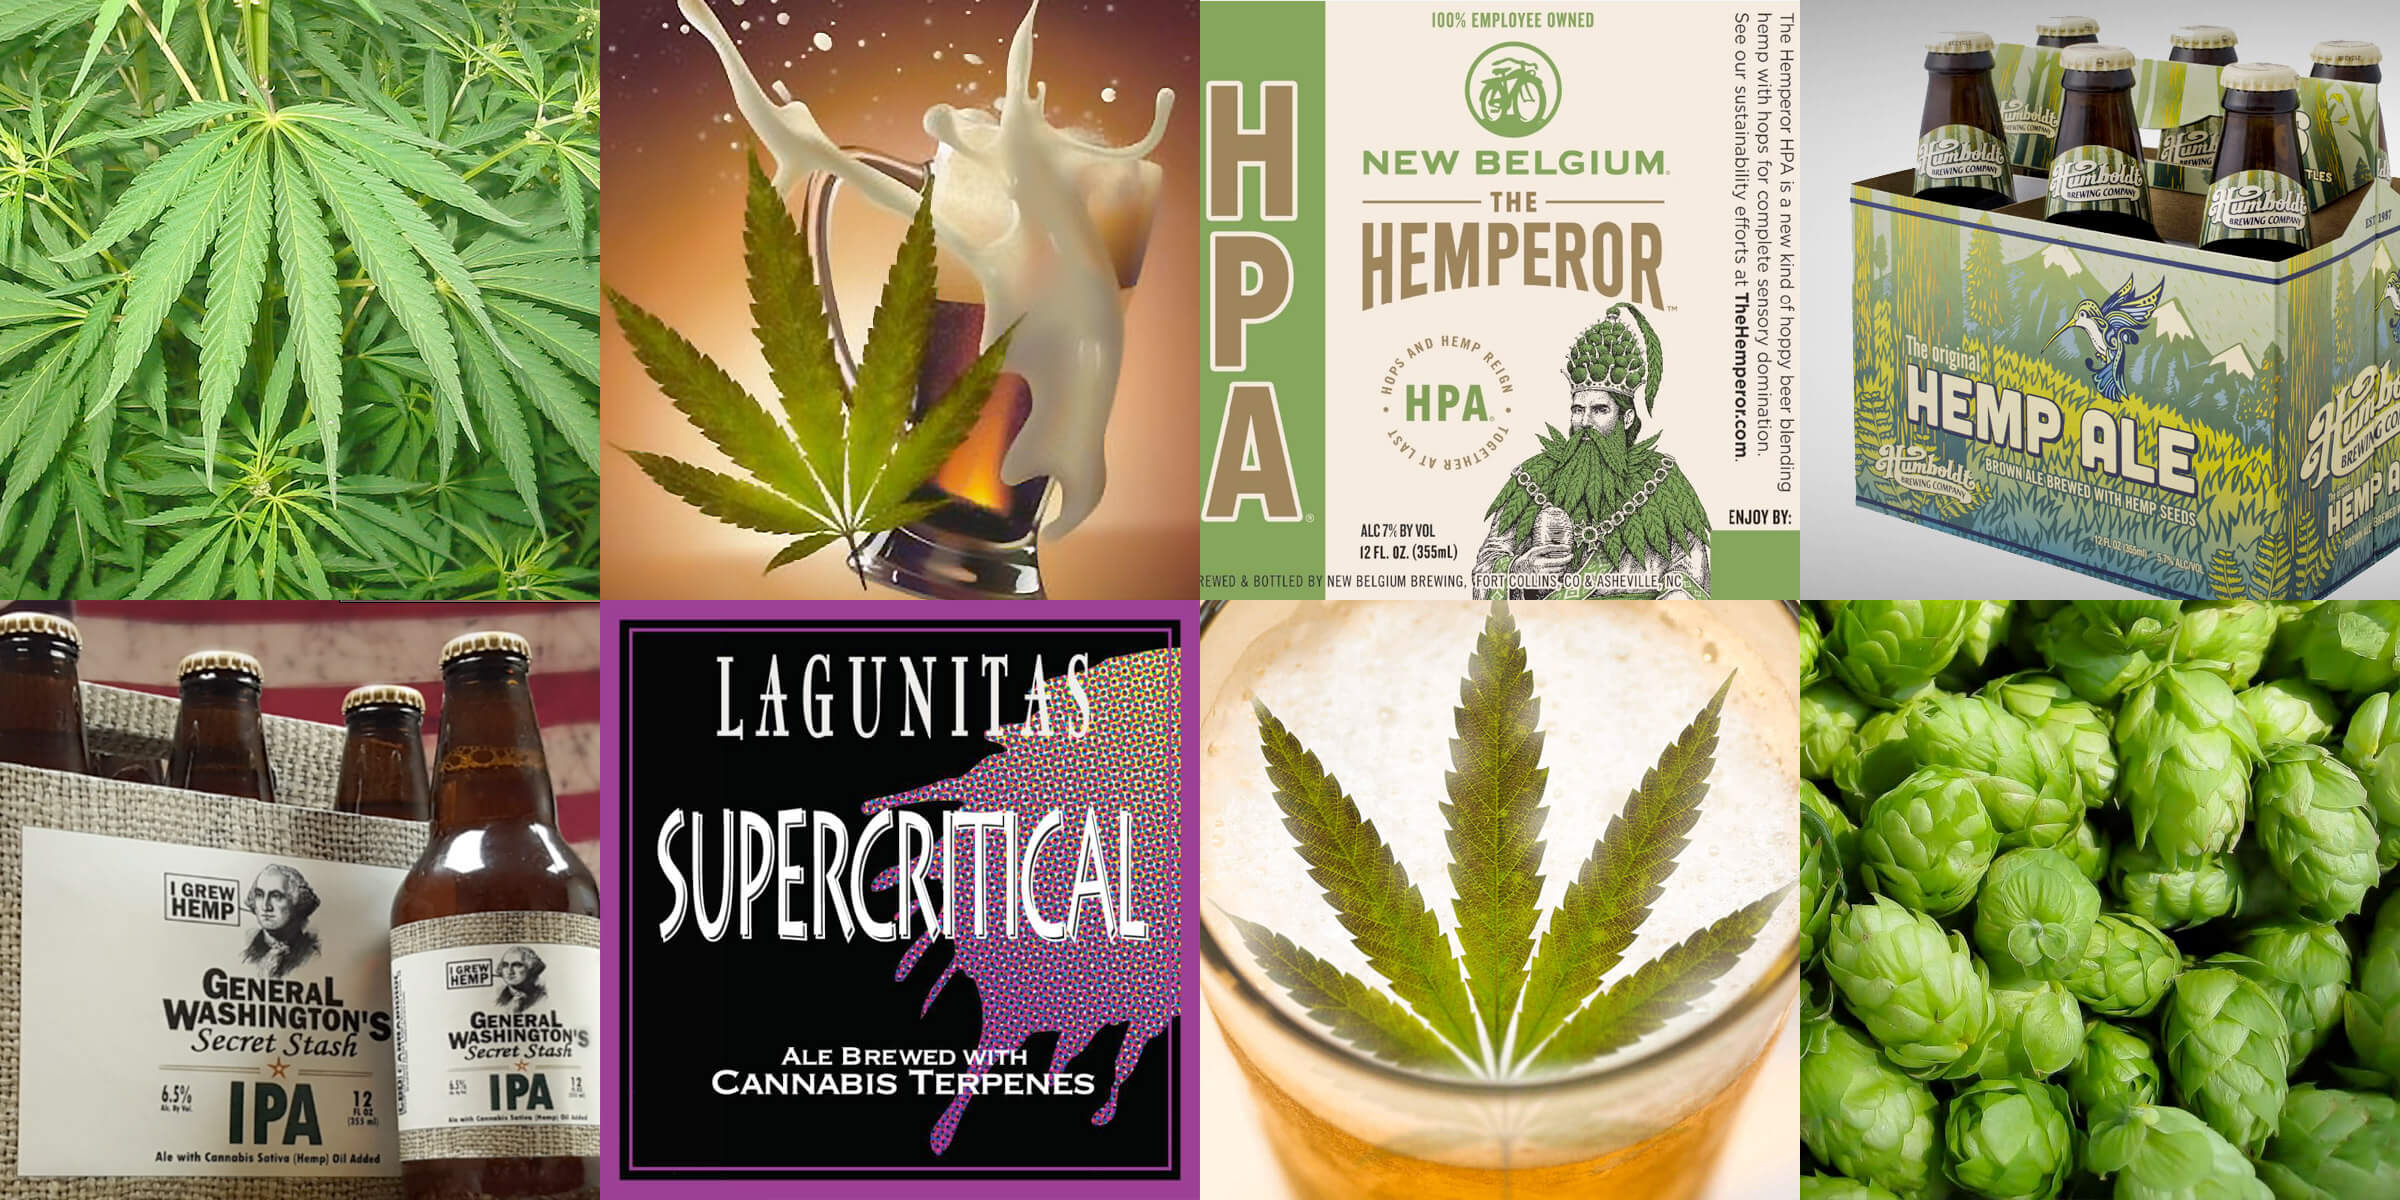 The latest trend in craft brewing that the industry has been high on is the proliferation of cannabis-infused beers.